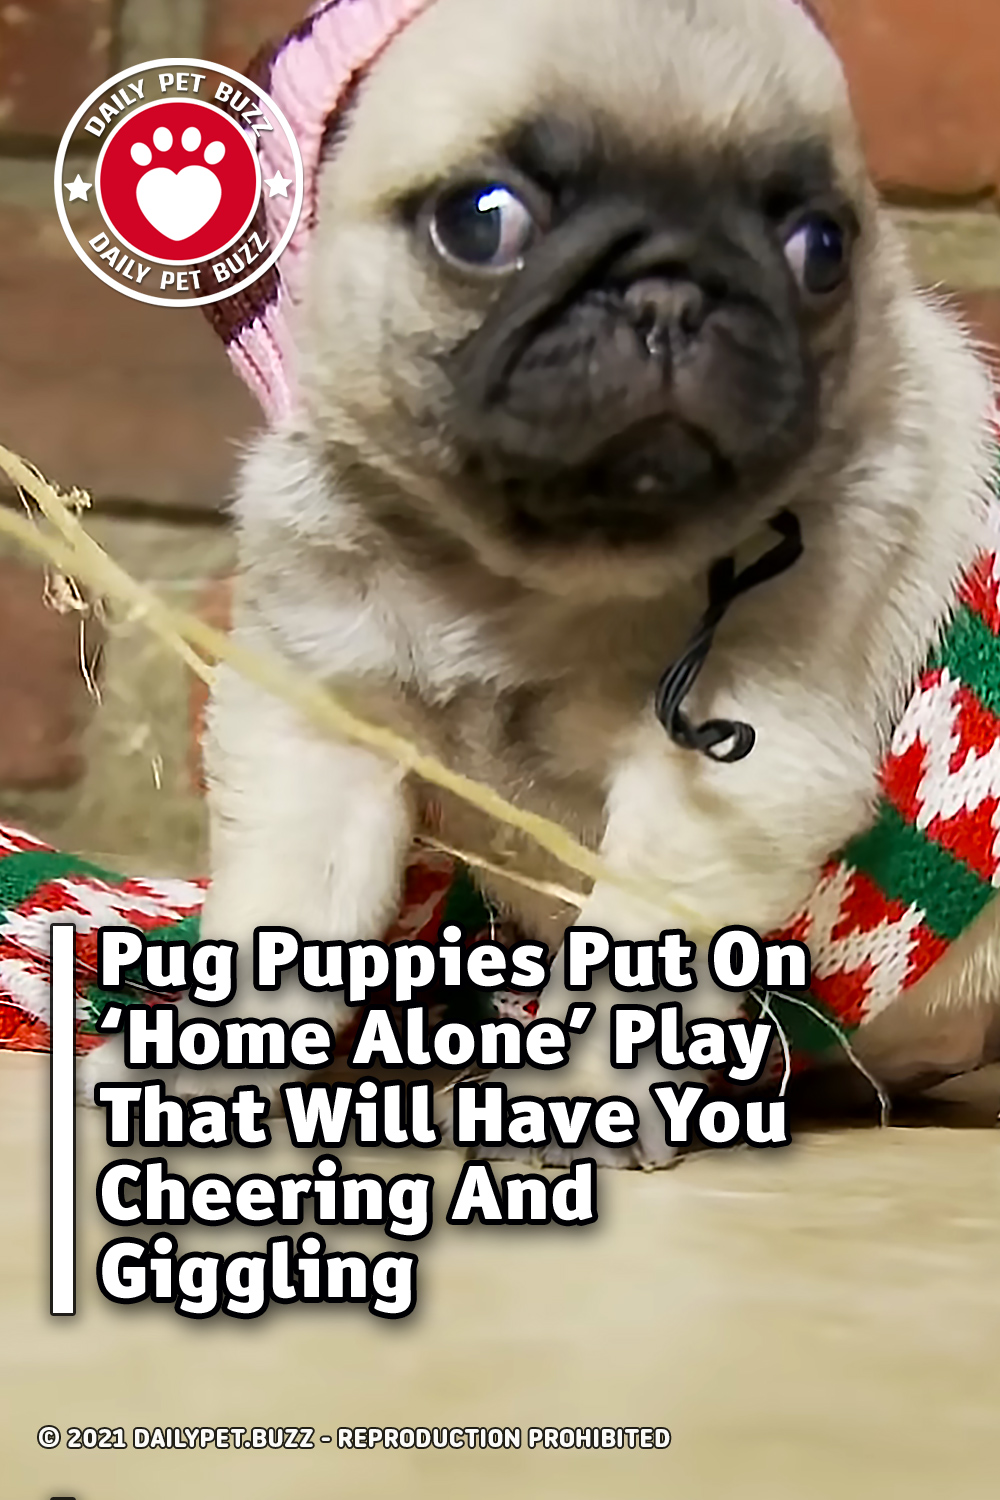 Pug Puppies Put On \'Home Alone\' Play That Will Have You Cheering And Giggling